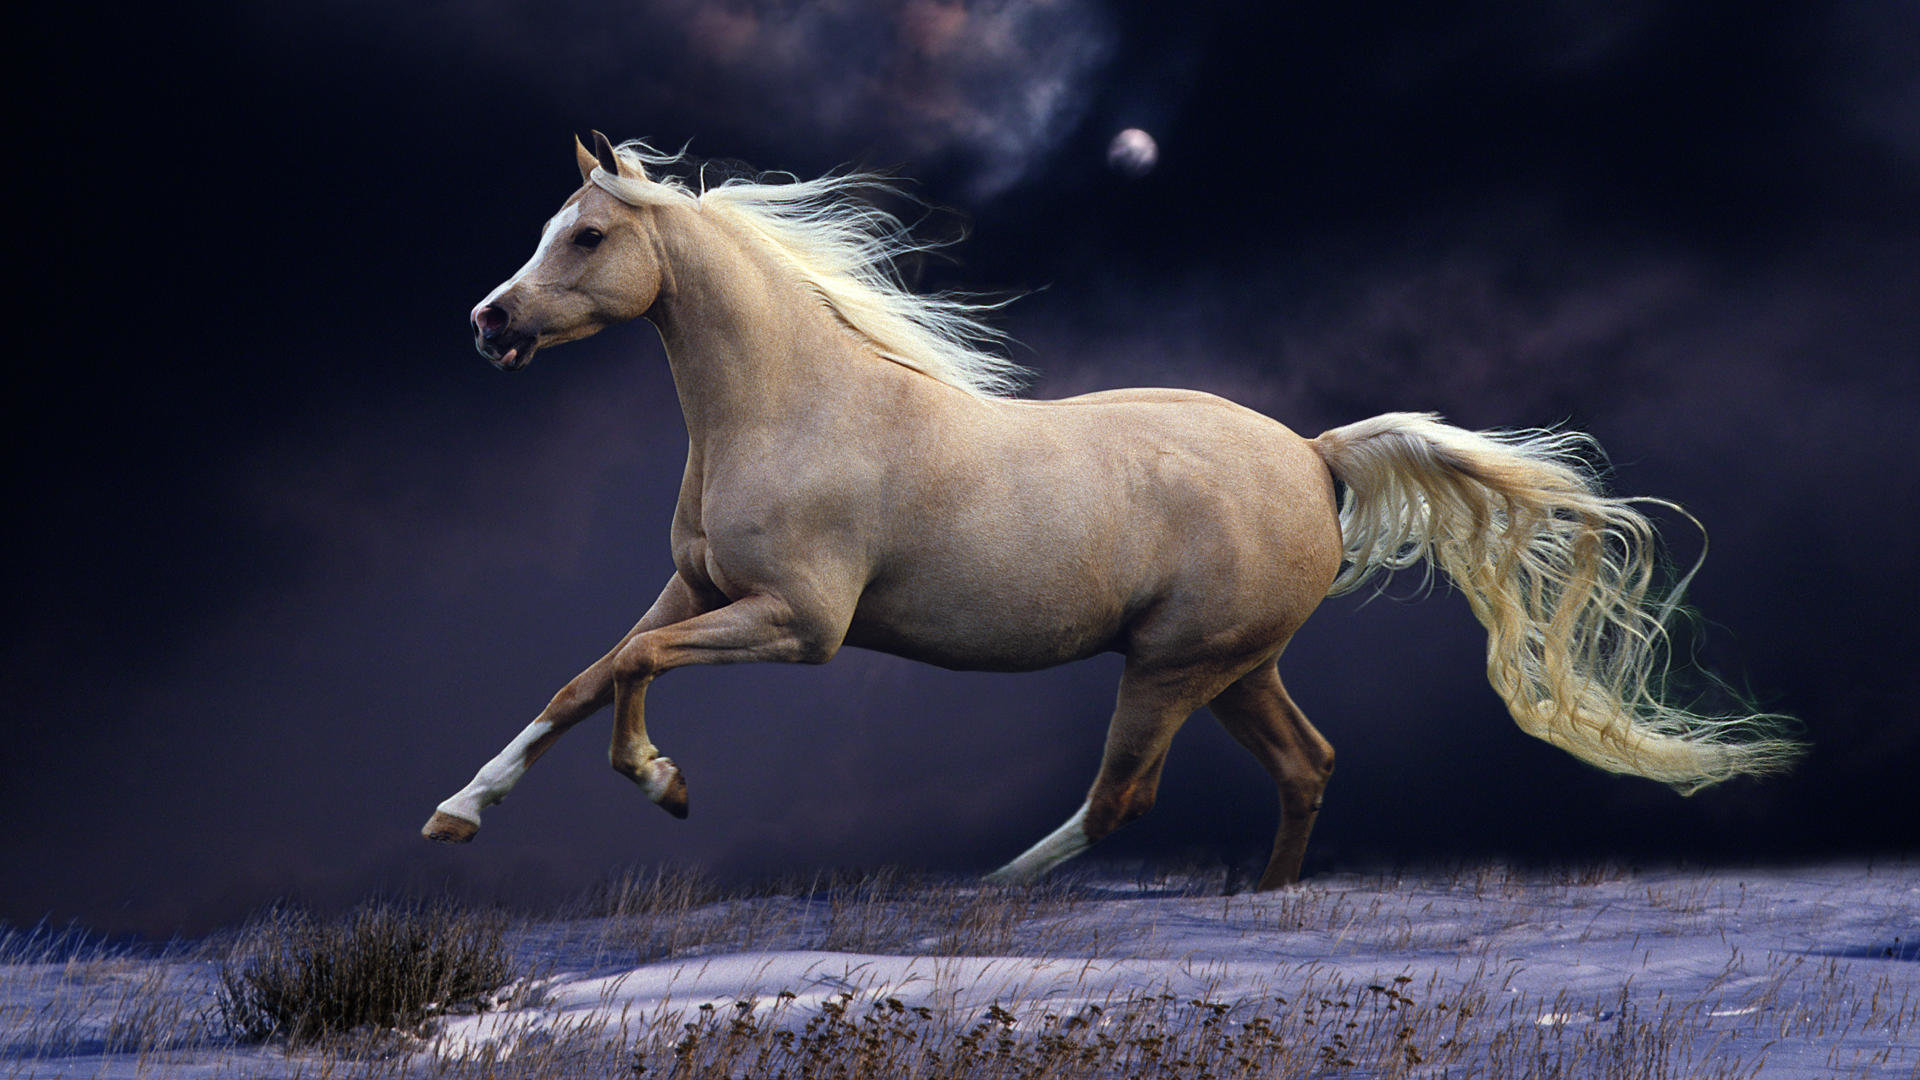 Free Horse high quality background ID:23255 for full hd 1920x1080 desktop